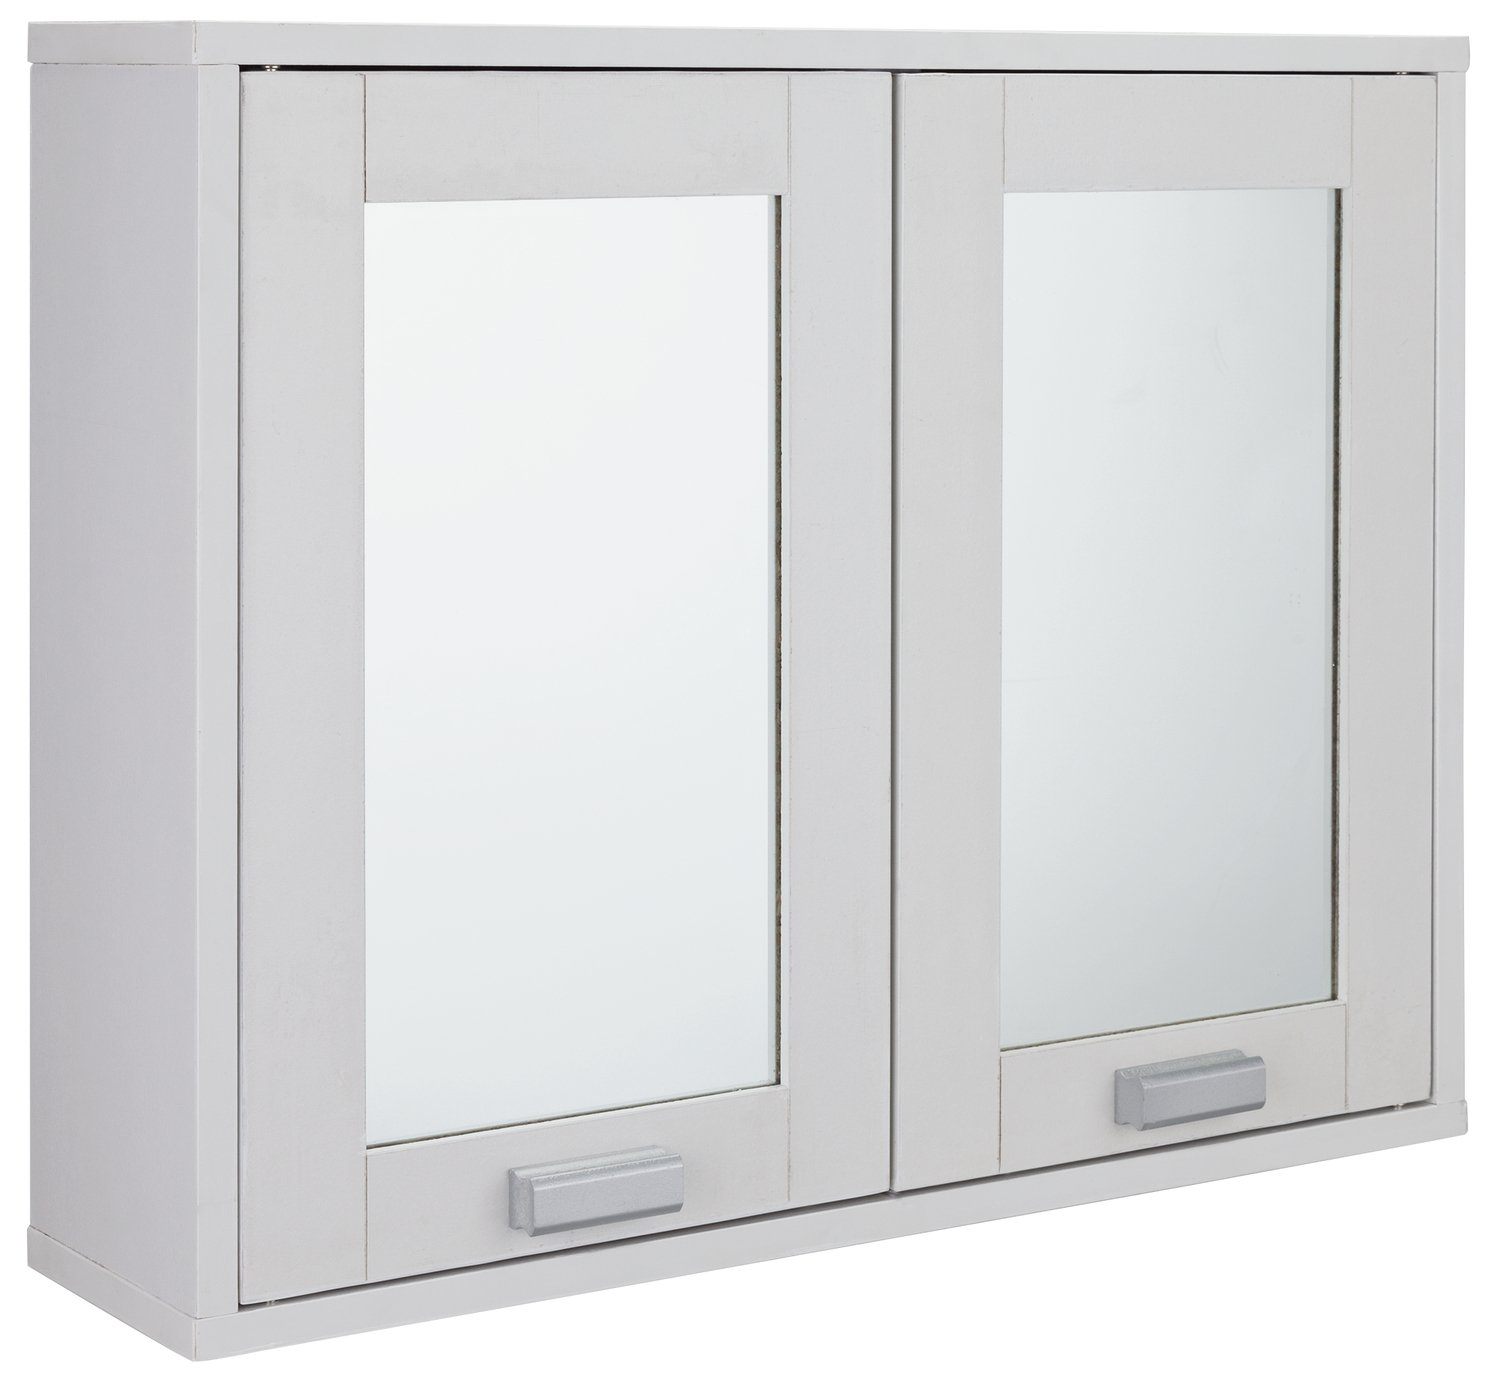 buy bathroom cabinet online buy home 1 door mirrored classic cabinet white at 12694